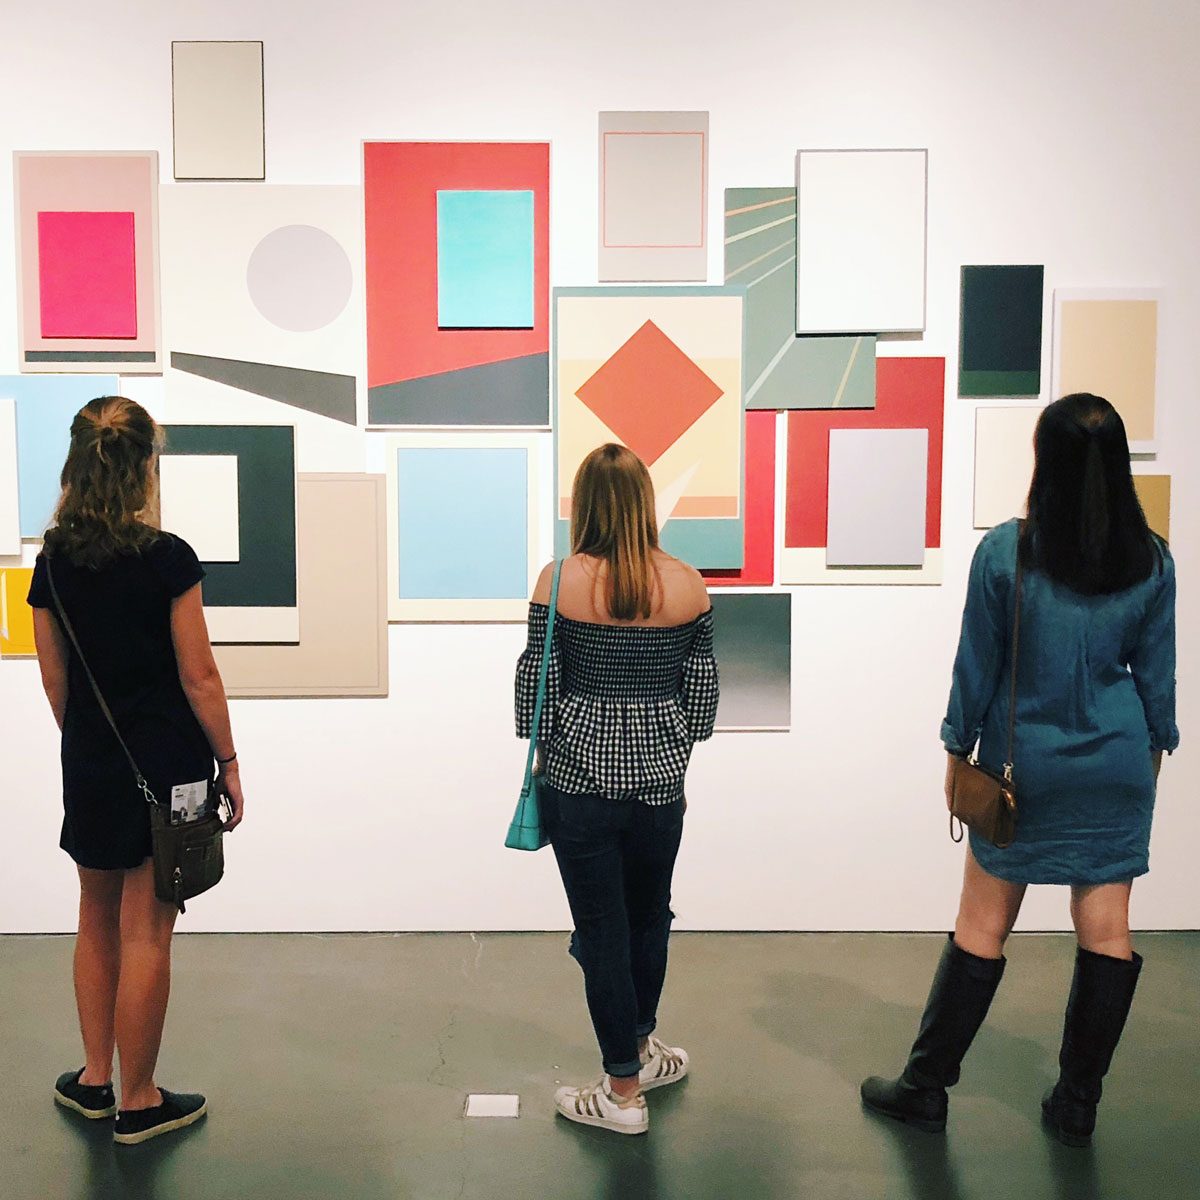 Students looking at art in a museum